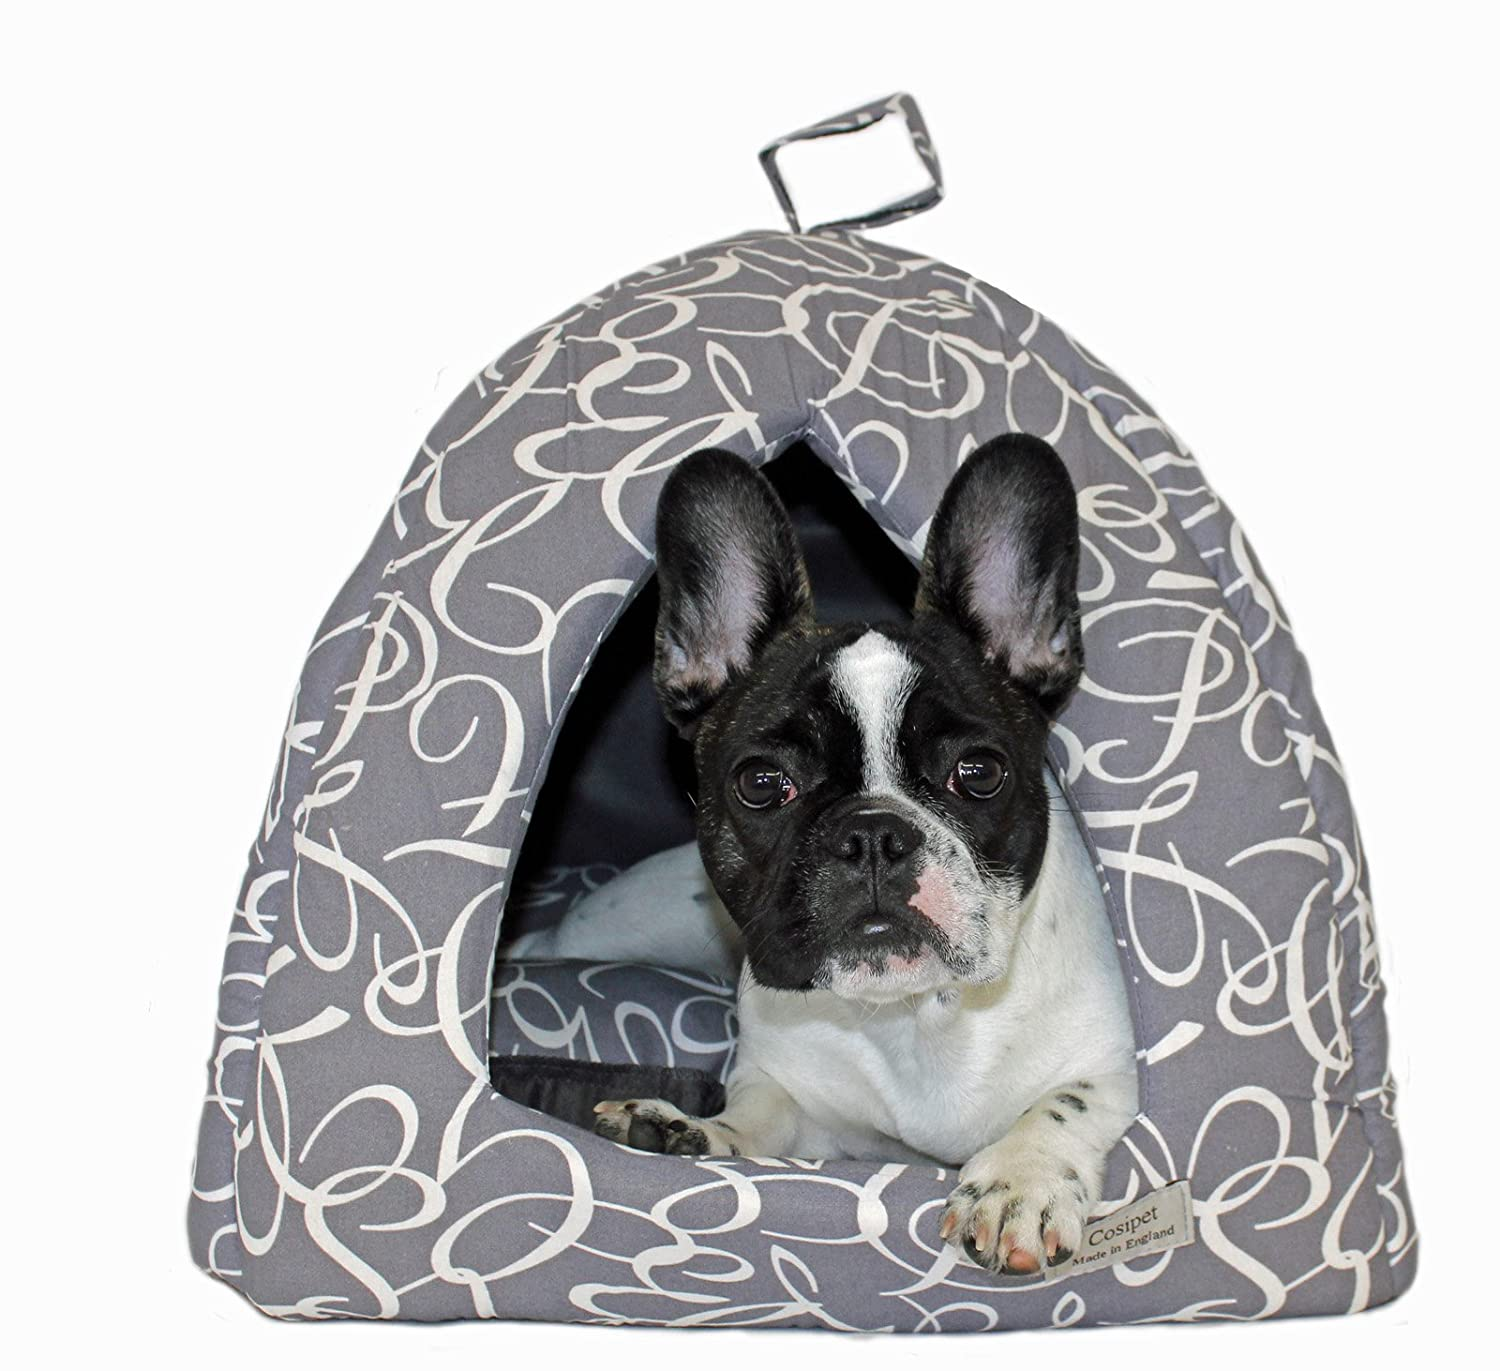 L Cosipet Nocturne Igloo, Large, Grey